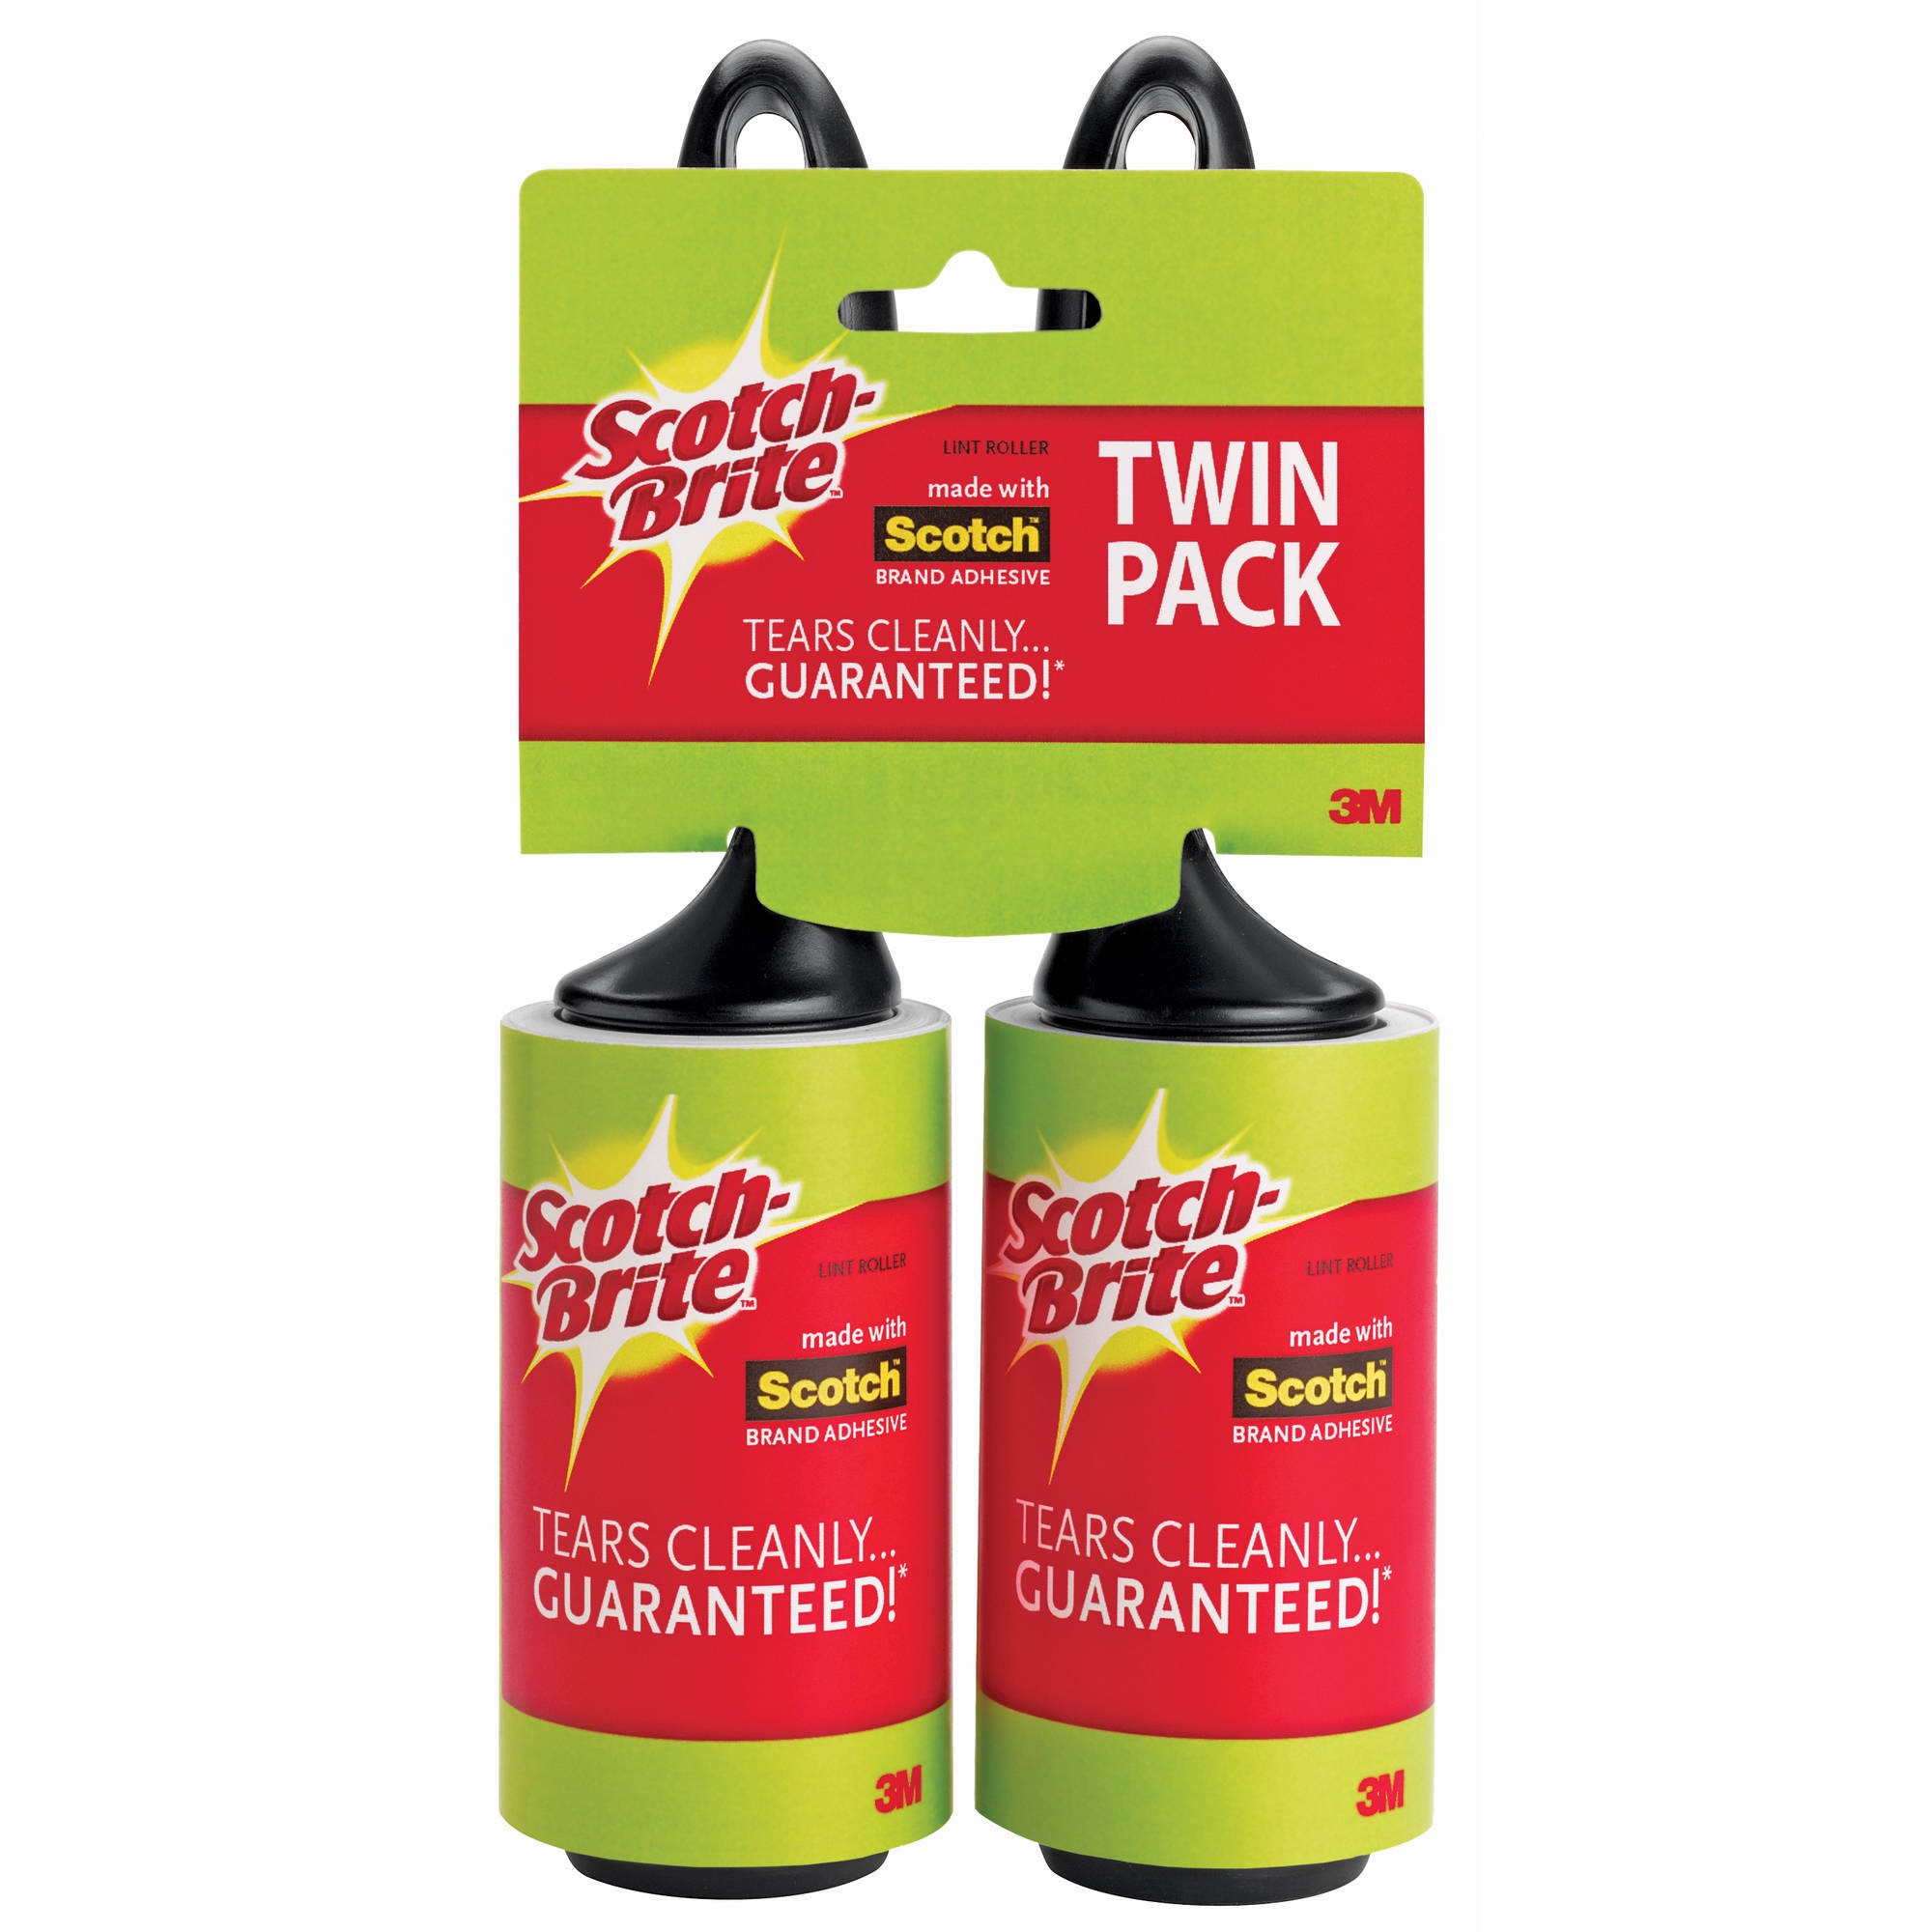 Scotch-Brite Lint Roller Twin Pack, 65 Sheets per Roller, 2 Rollers per Pack